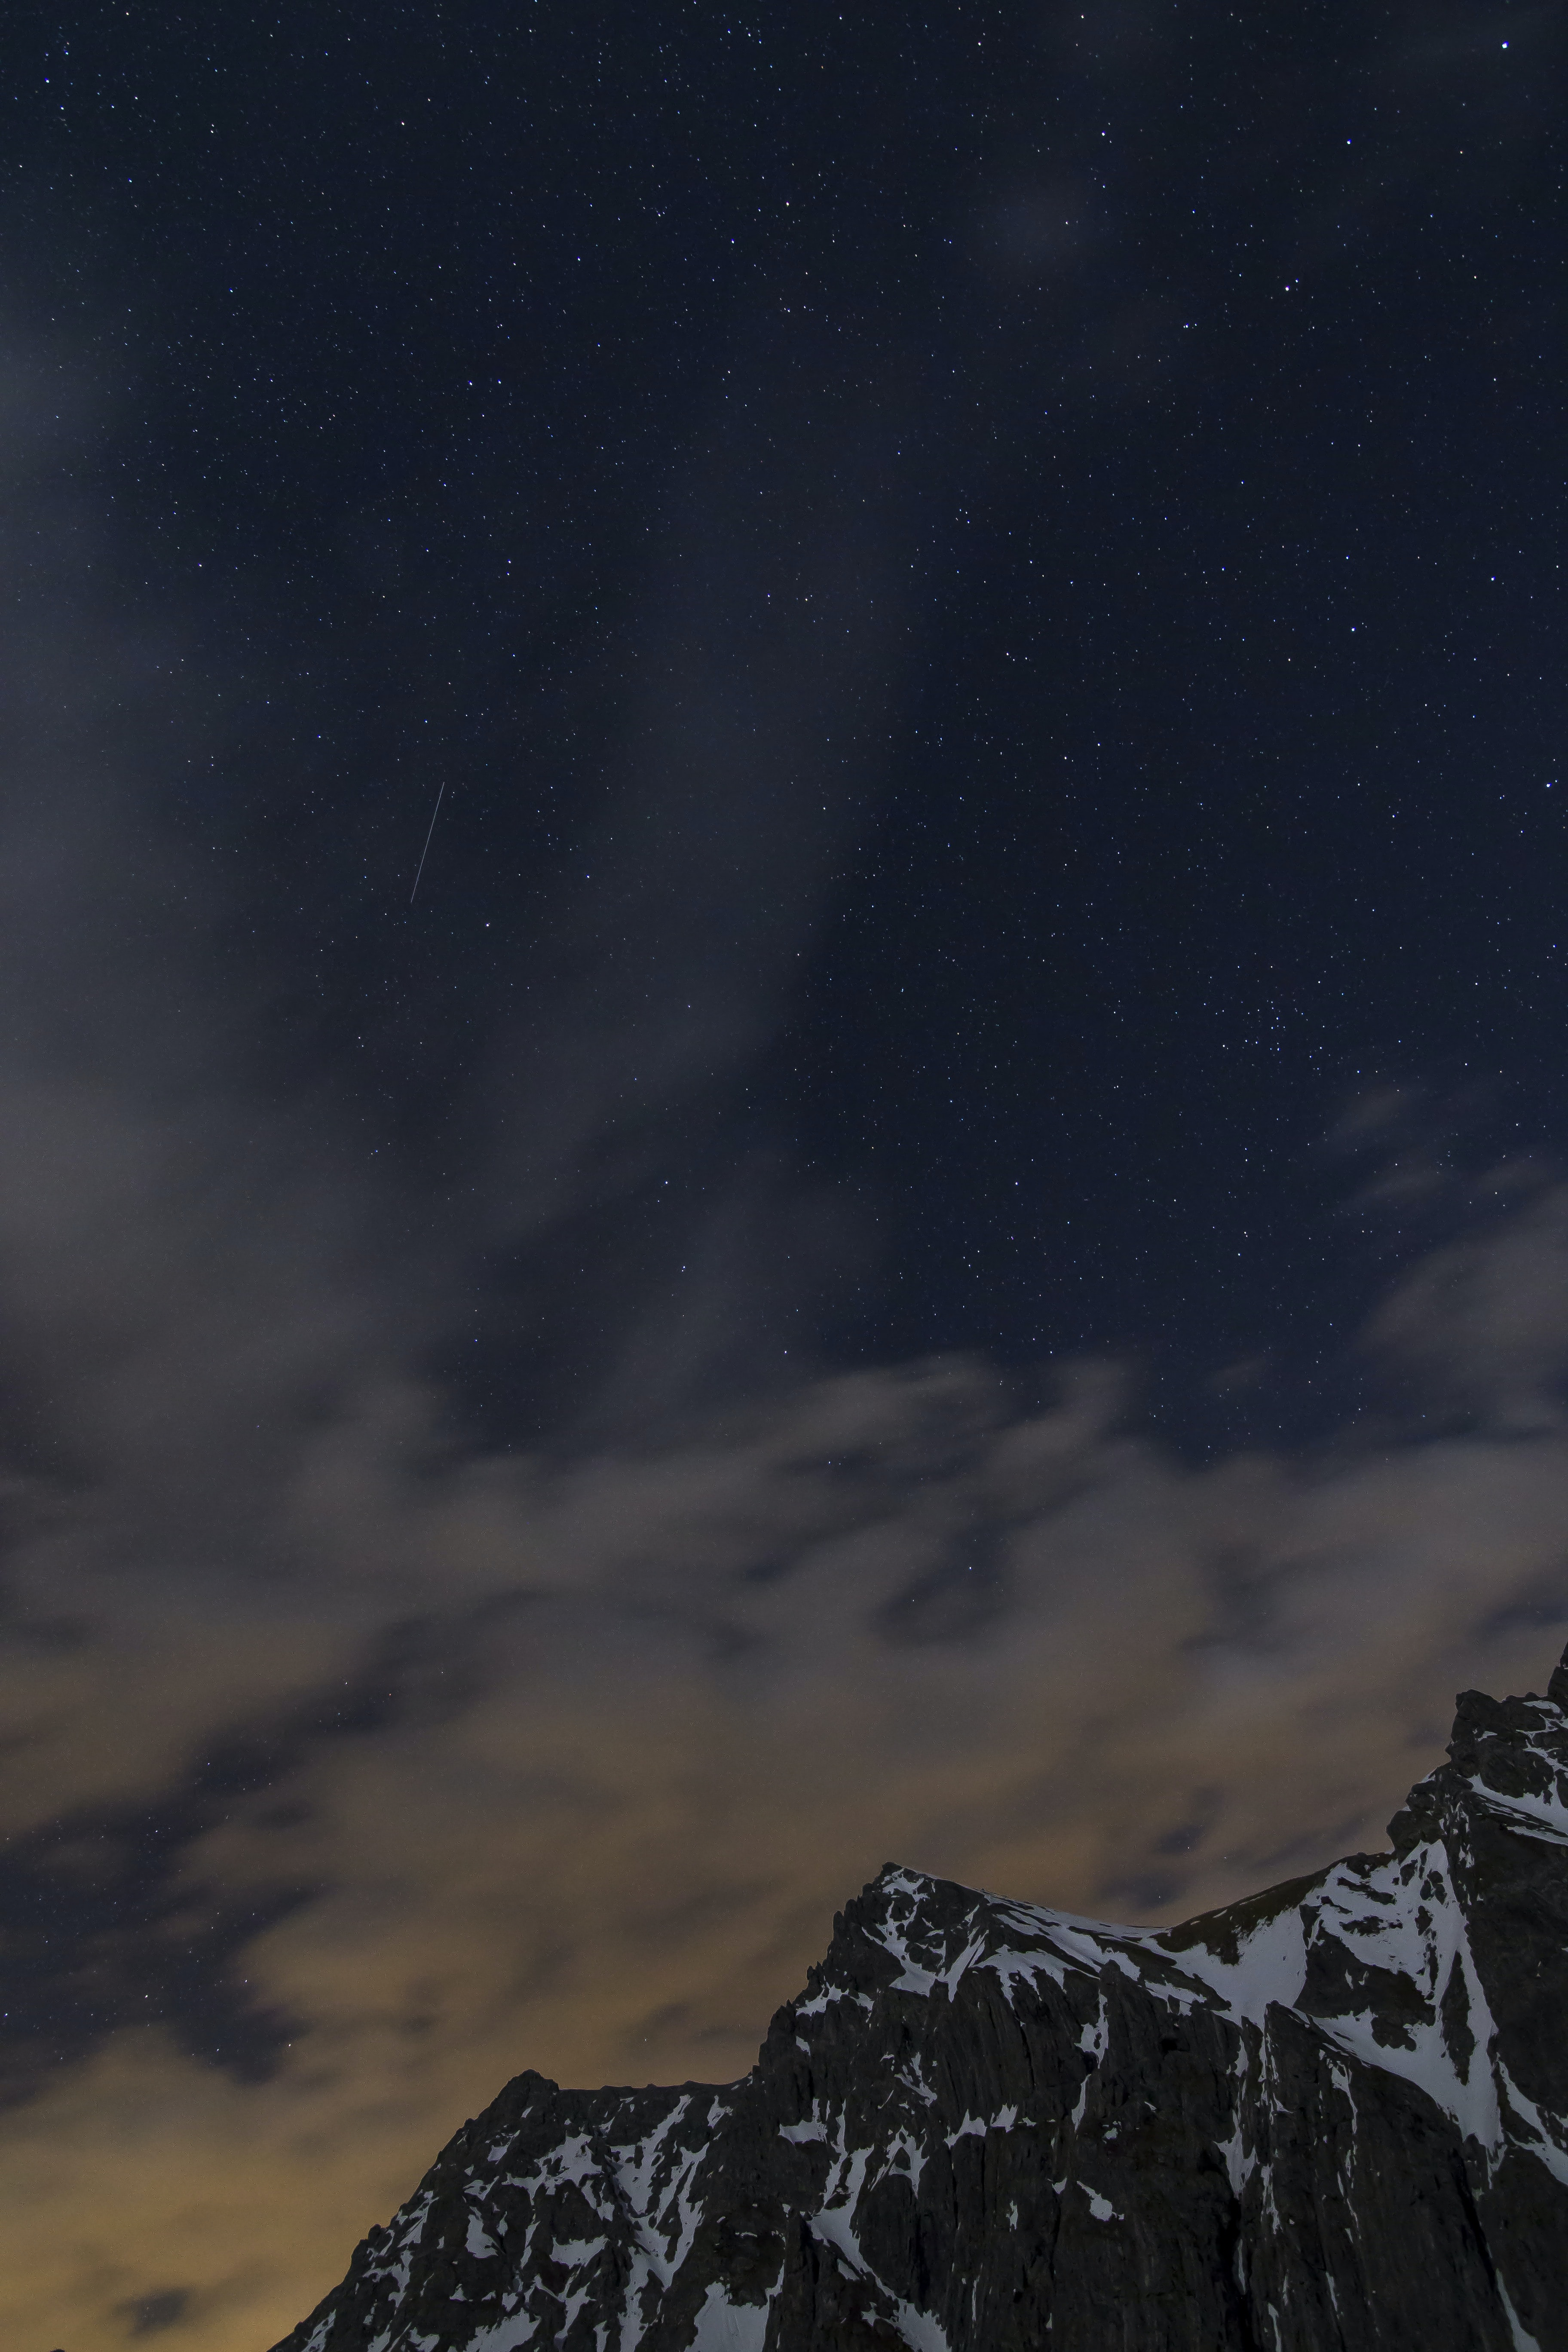 Clouds obscure the starry sky over tall mountain peaks near Lünersee